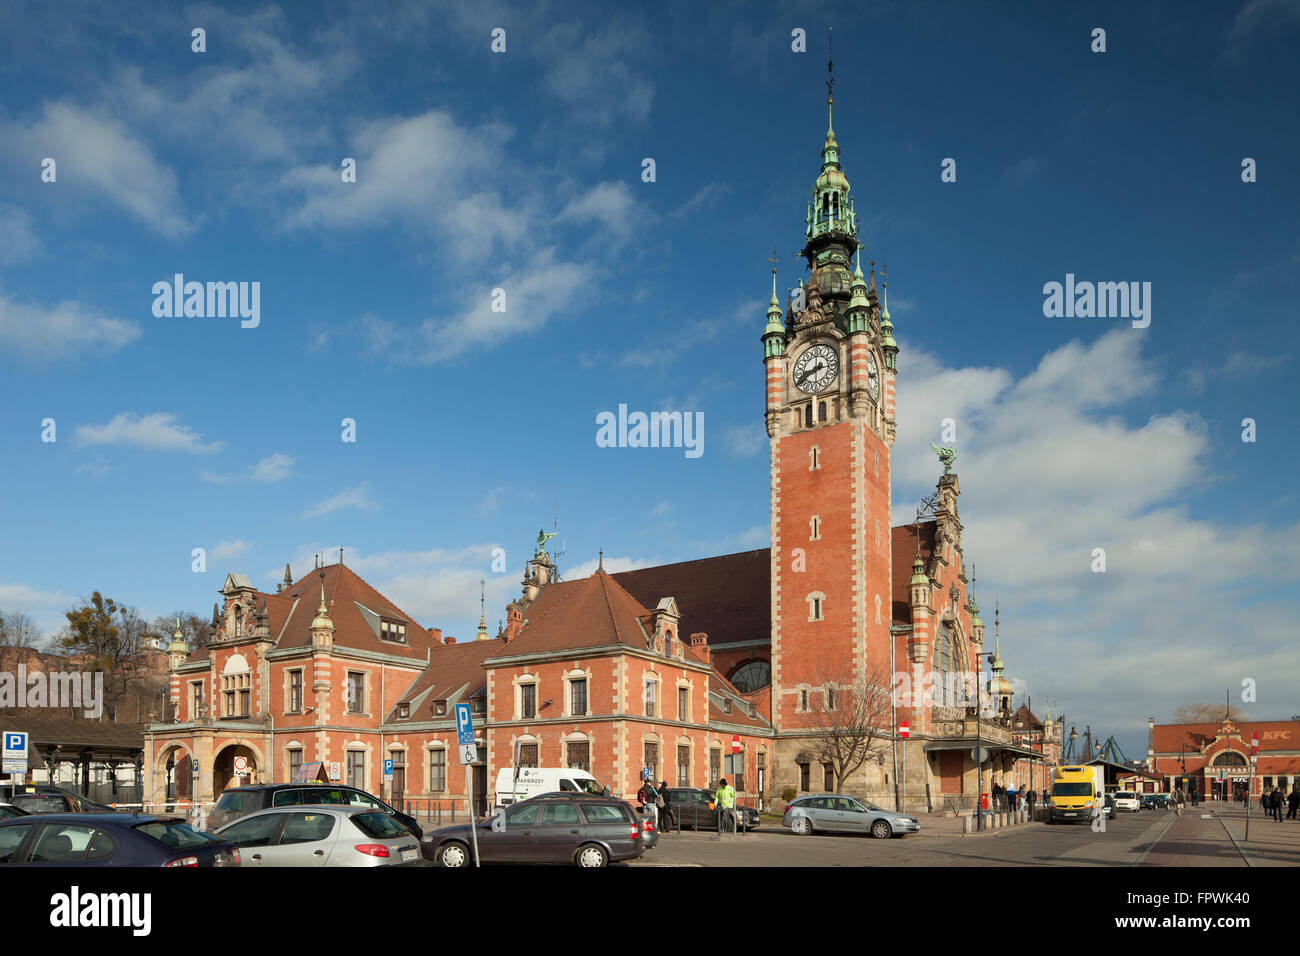 Morning at Main Station in Gdansk, Poland. - Stock Image